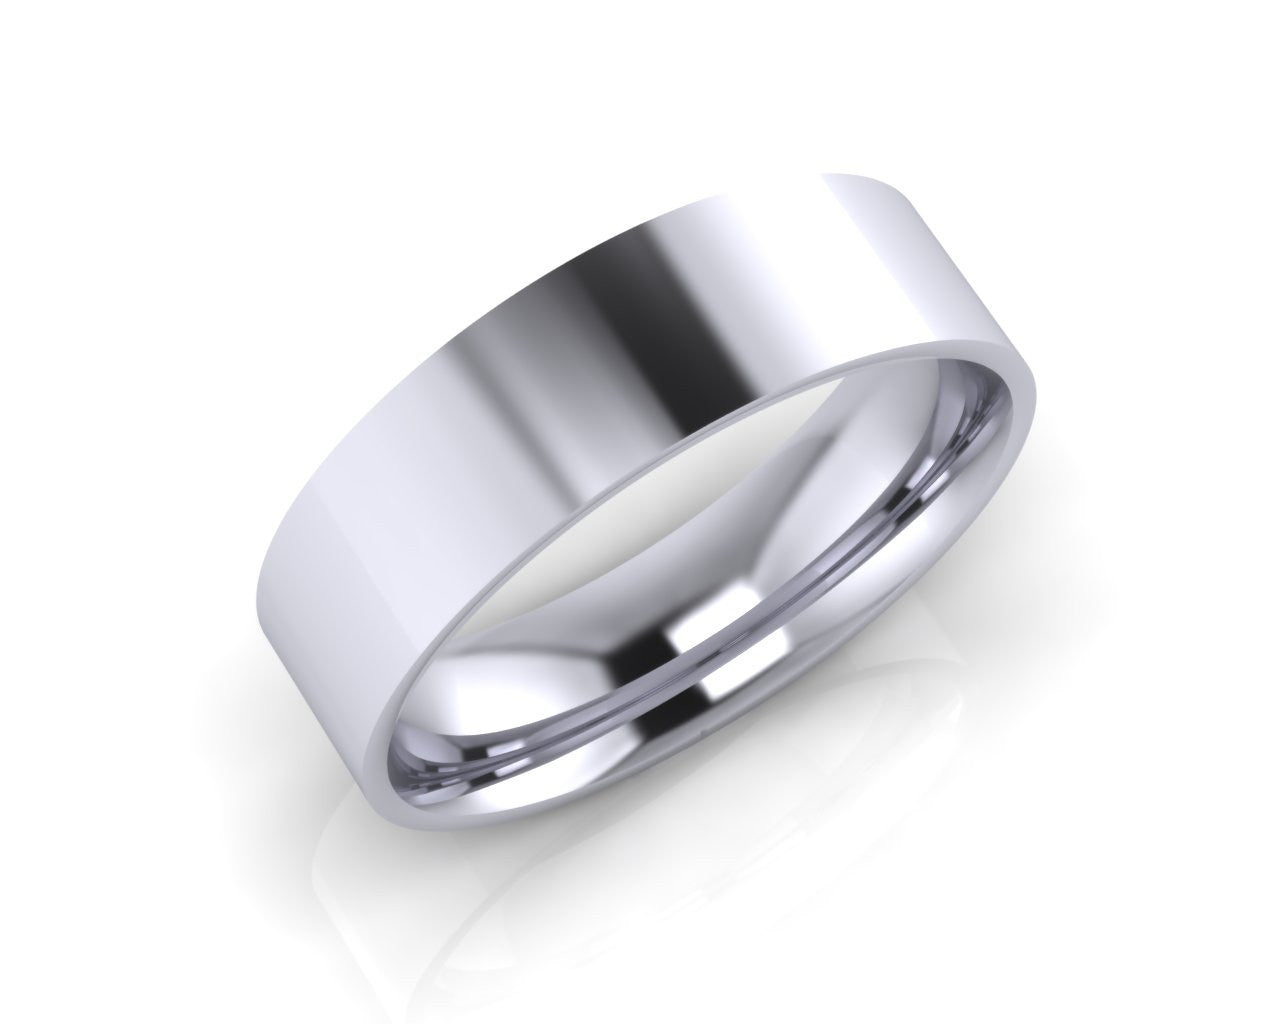 Platinum Mini Demi-Ellipse Wedding Ring 6.0mm Size T - all ring sizes available